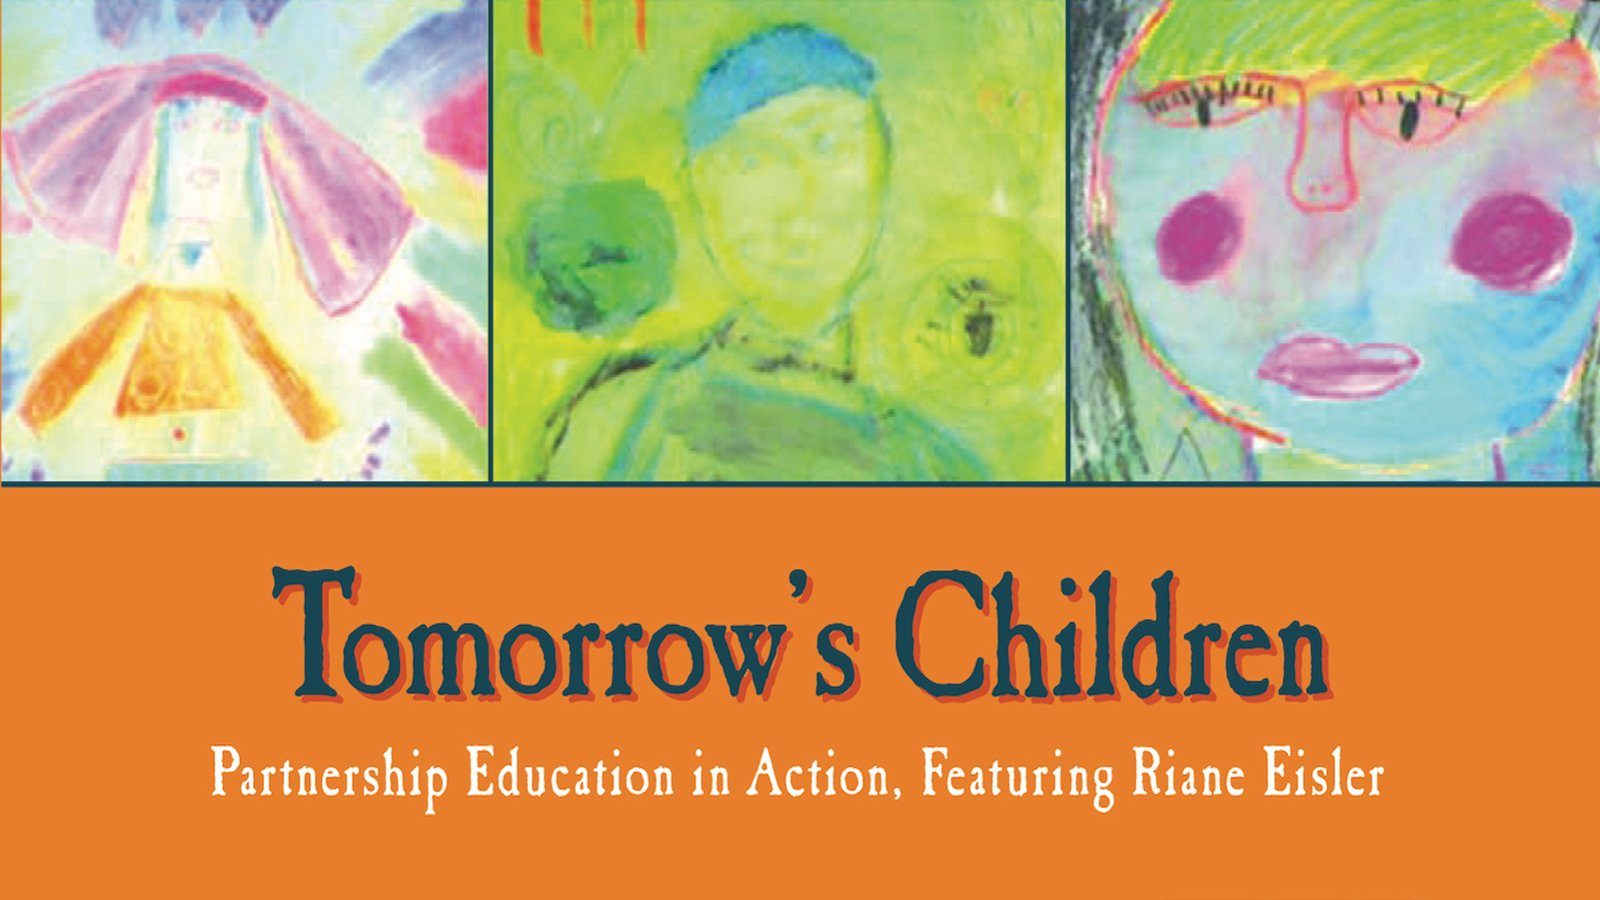 Tomorrow's Children - Partnership Education in Action